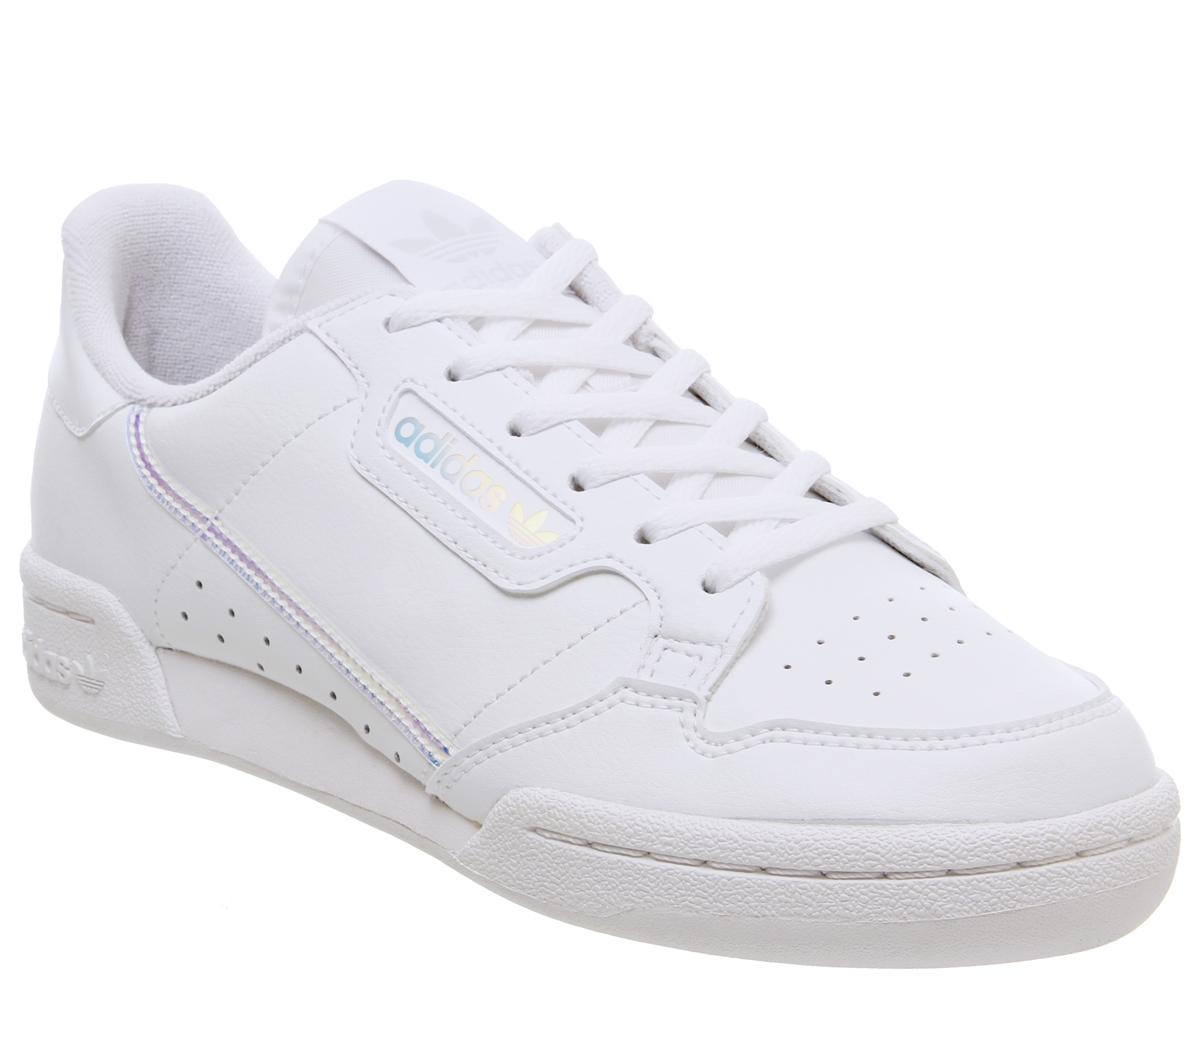 Continental 80's Jnr Trainers